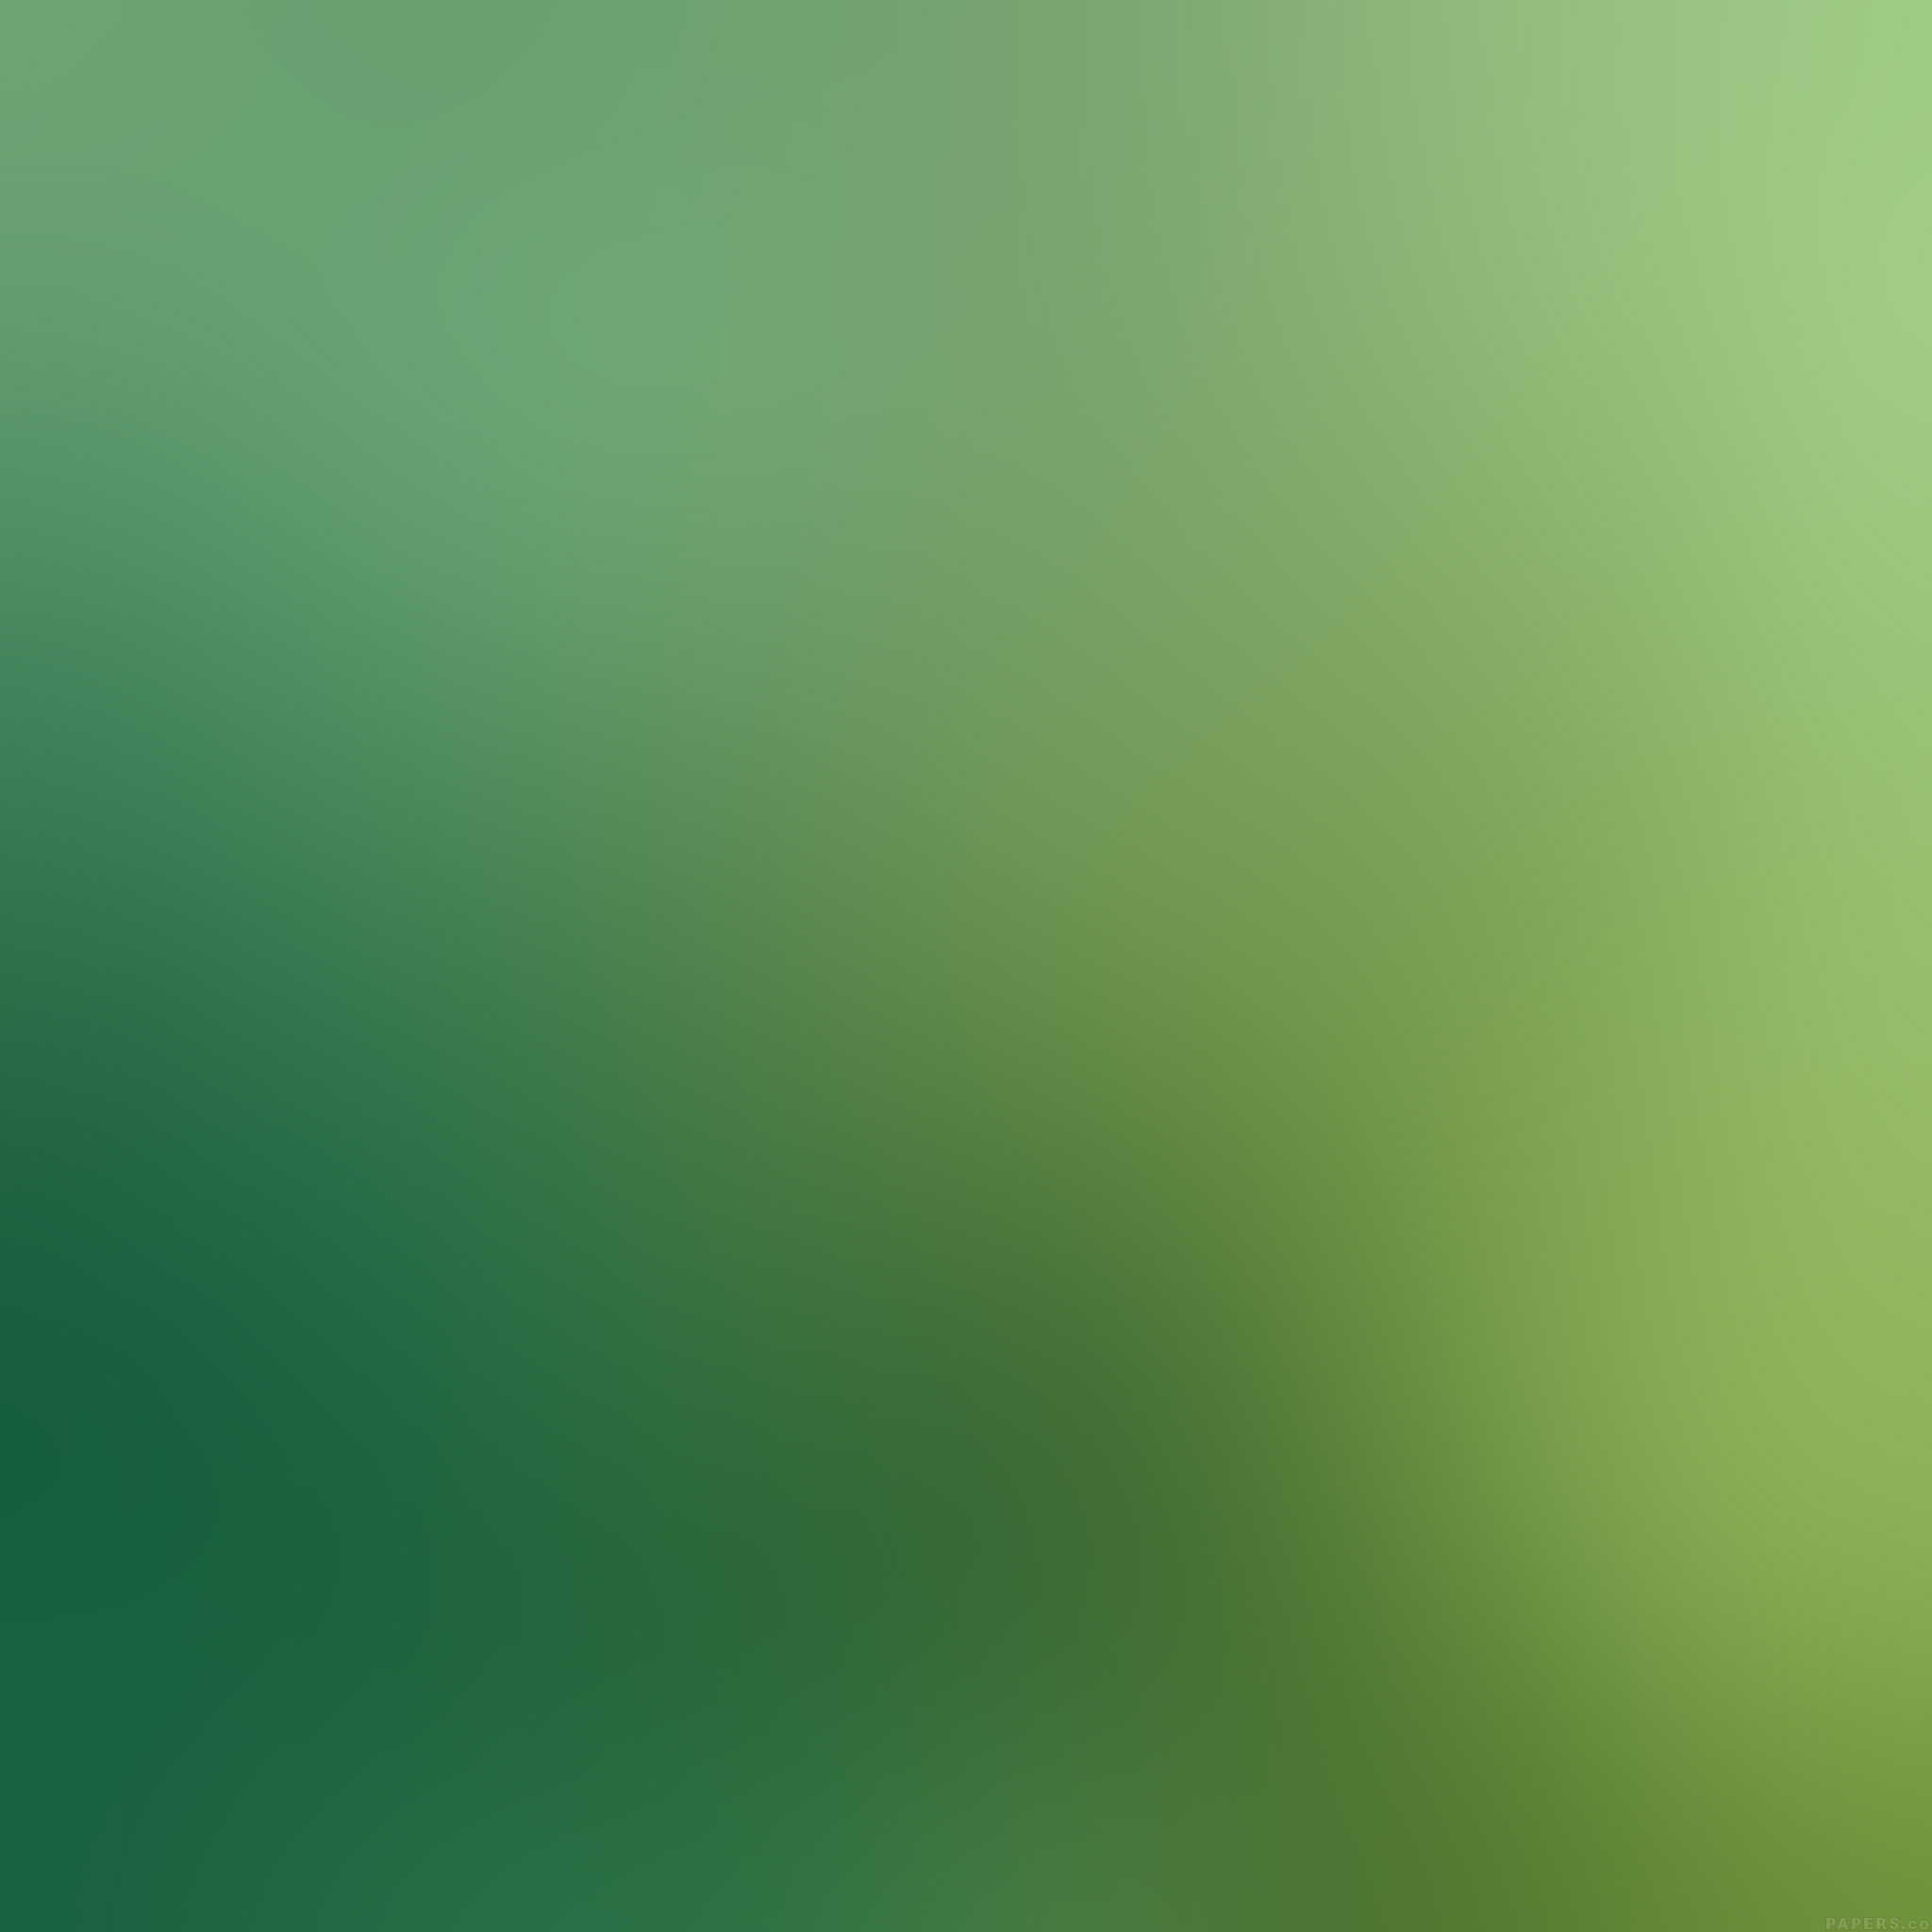 Wallpaper Iphone Peace And Love : FREEIOS7 sd67-green-peace-love-nature-gradation-blur - parallax HD iPhone iPad wallpaper